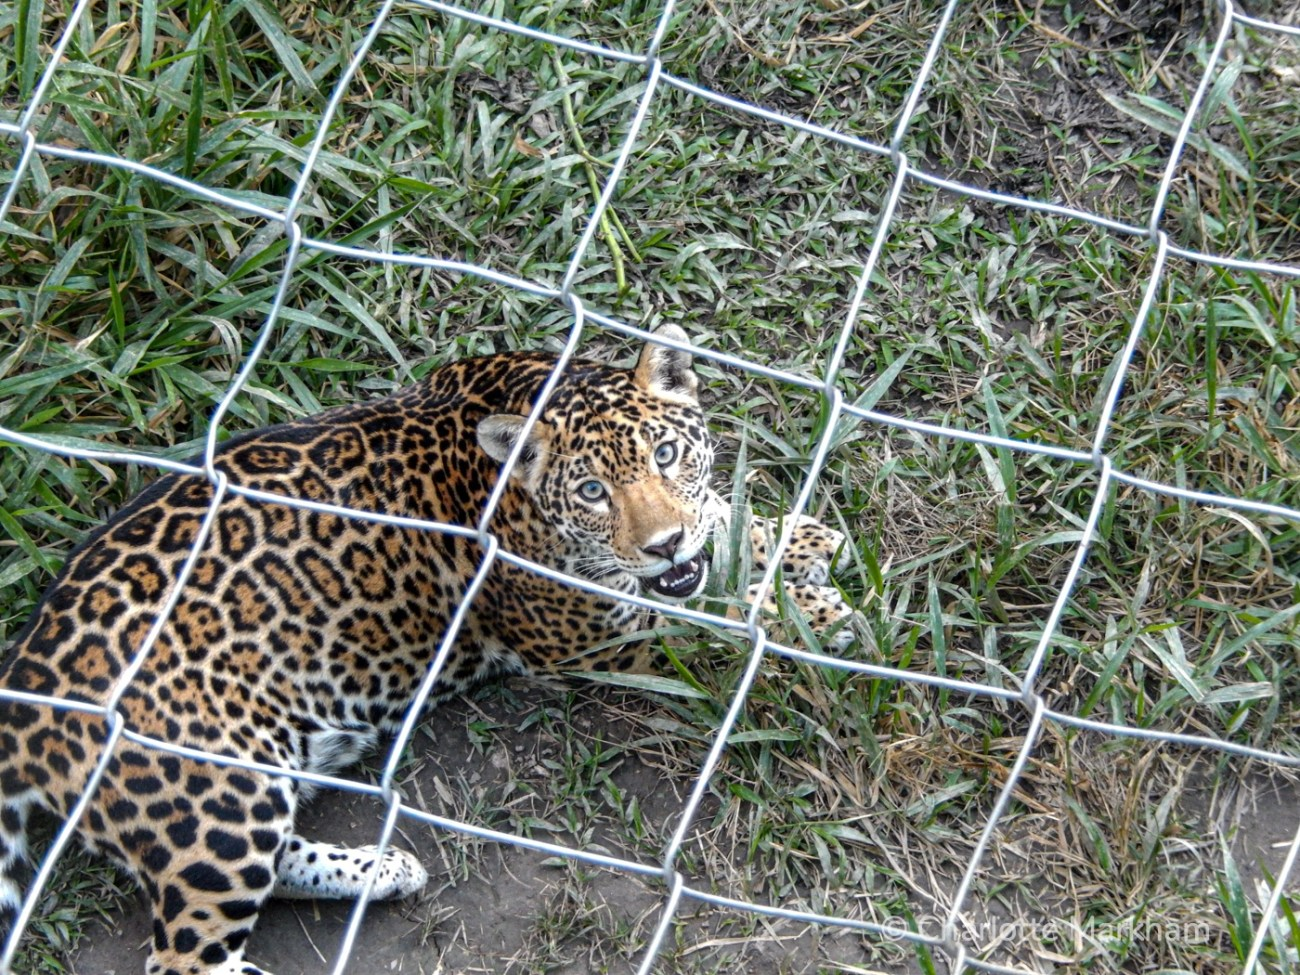 Brazilian jaguar in sanctuary